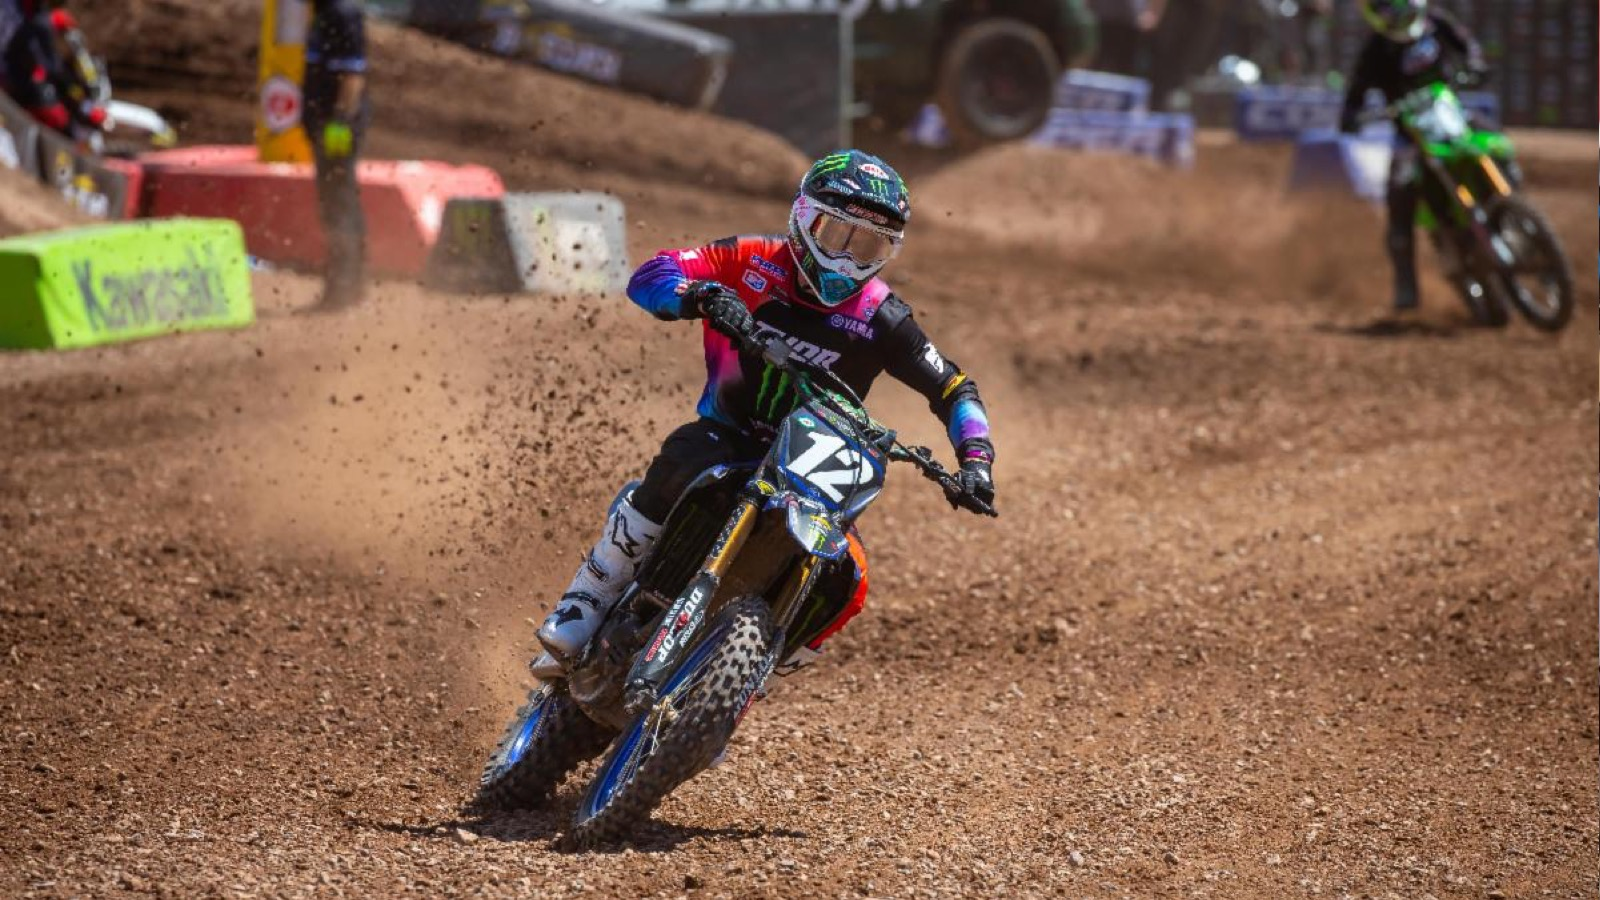 Shane McElrath Earns Second Win of 2020 in Eastern 250SX Class